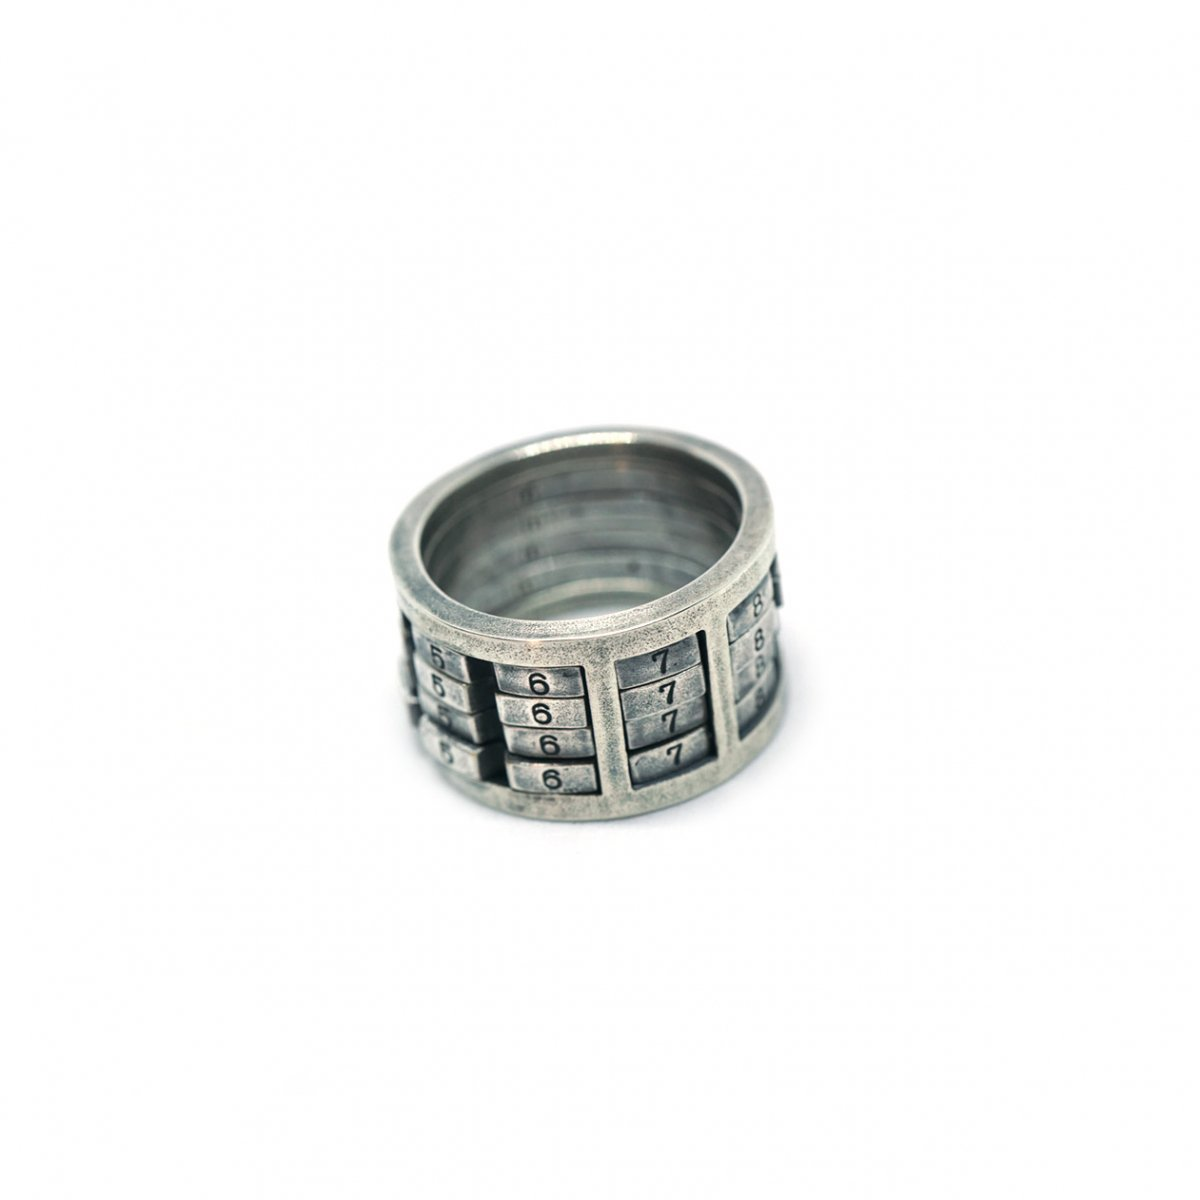 【 VARDE77 x THEFT 】NUMBER ROCK RING 4 SILVER